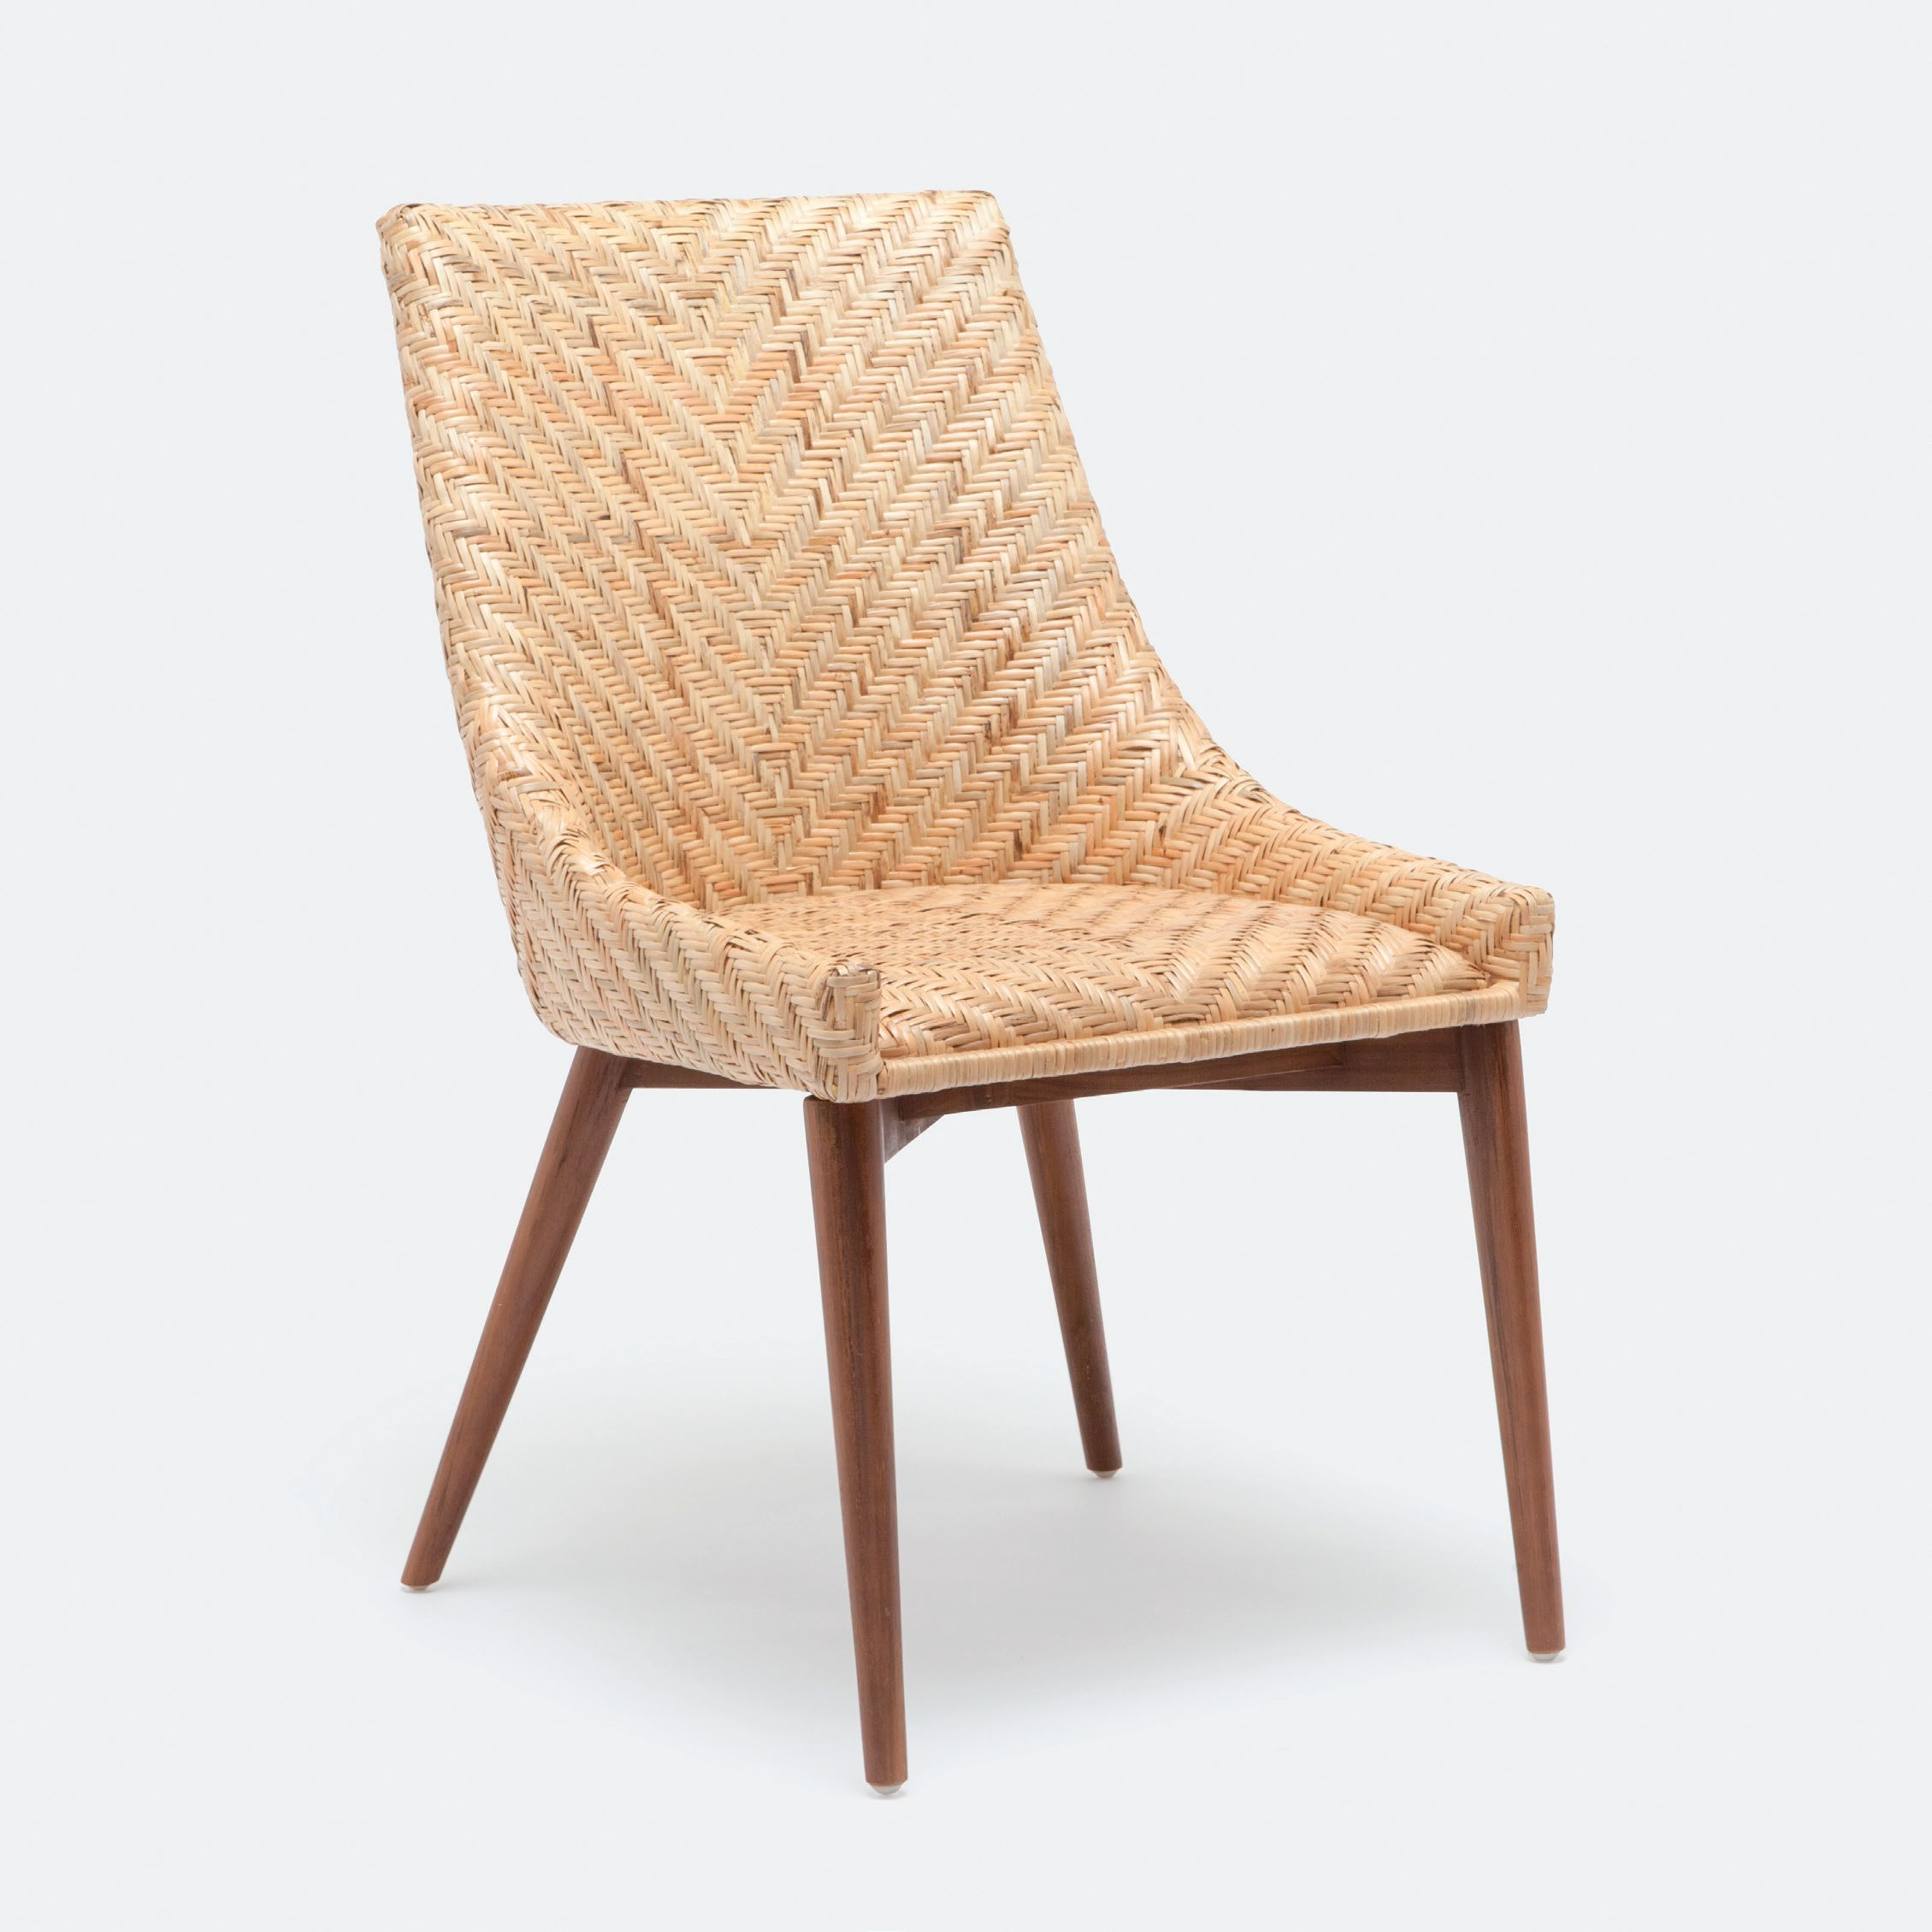 Cheap Wicker Chair: Woven Rattan Dining Chair